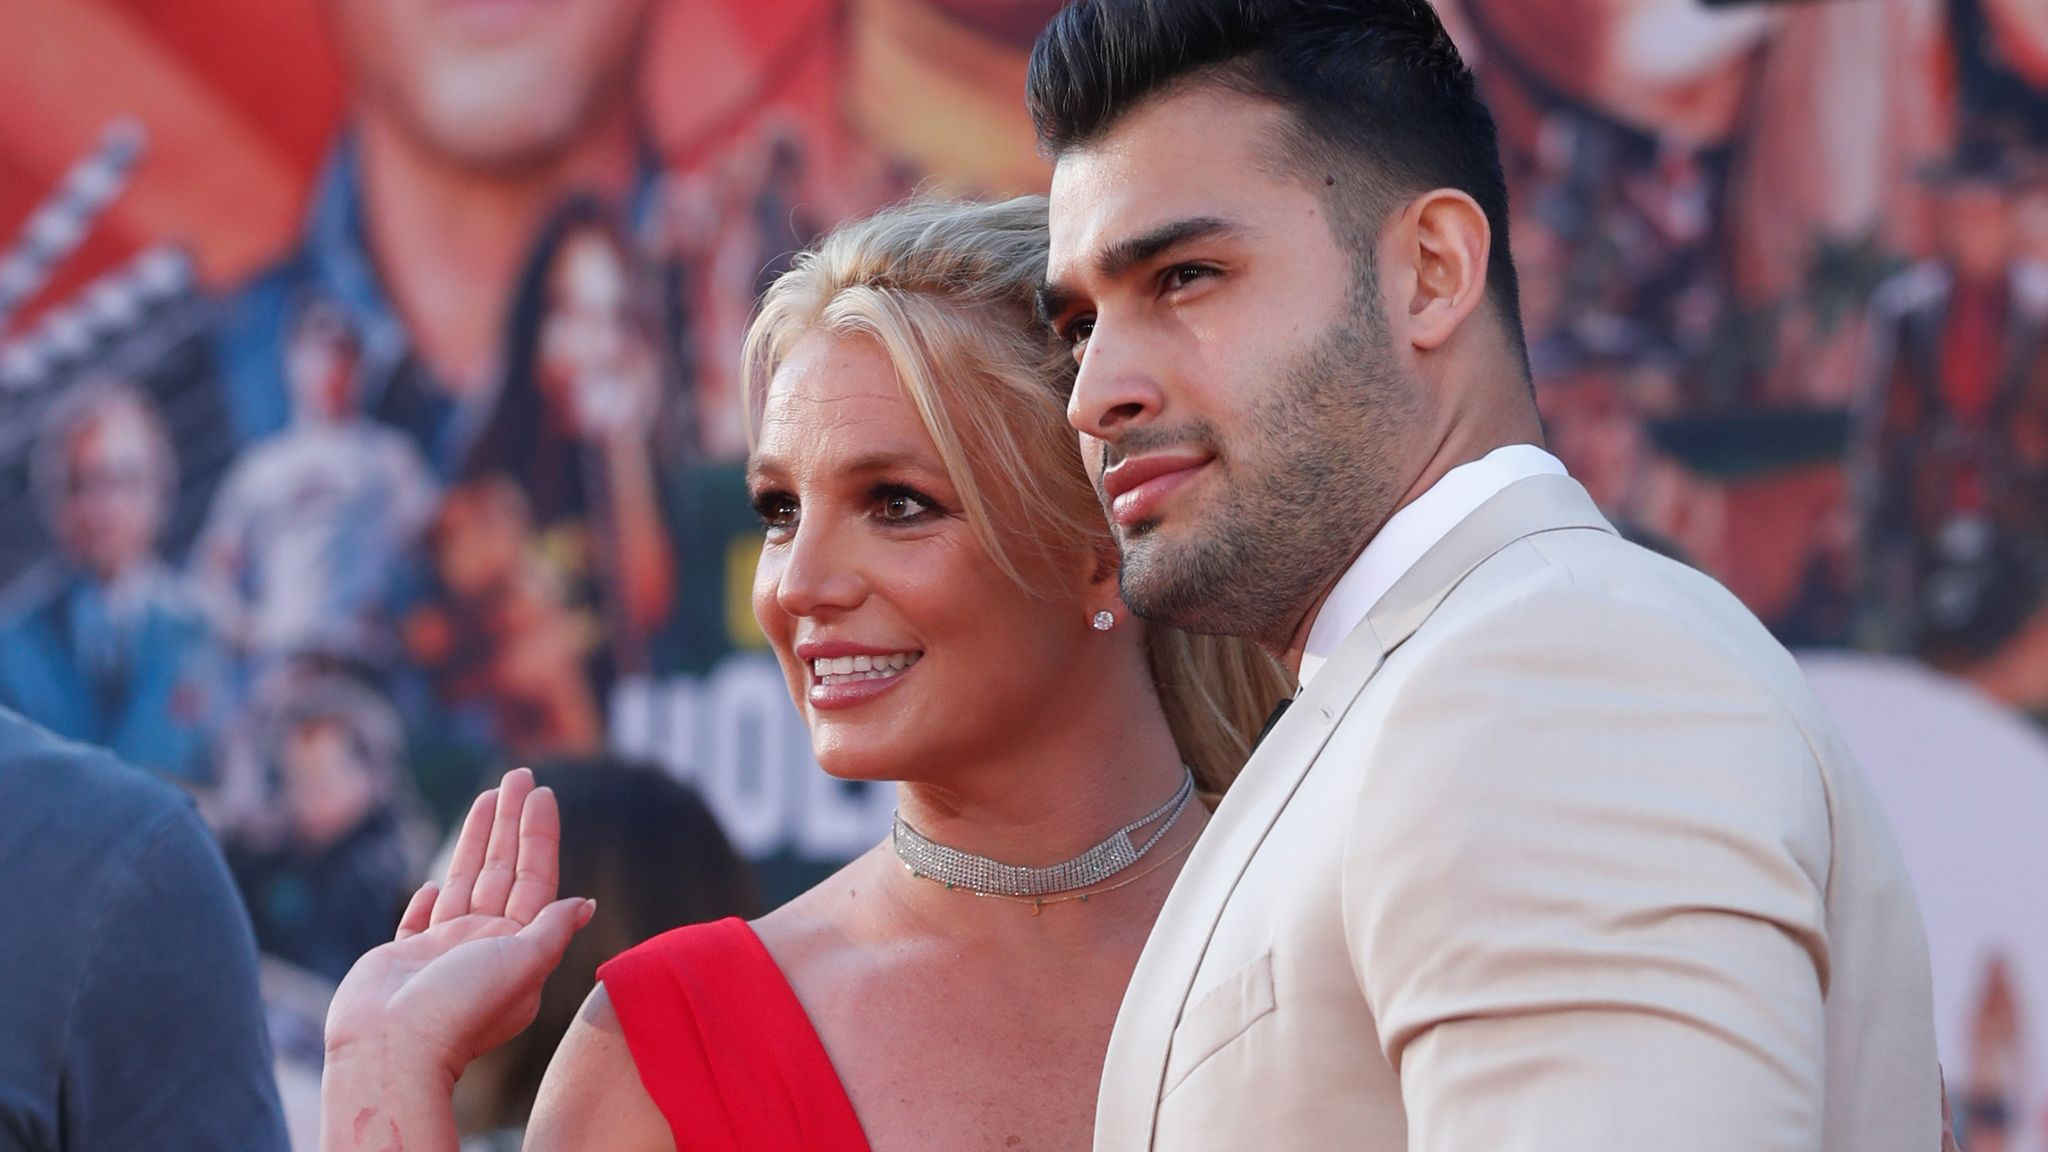 Britney Spears and Sam Asghari at the premiere of Once Upon A Time In Hollywood in LA in July 2019